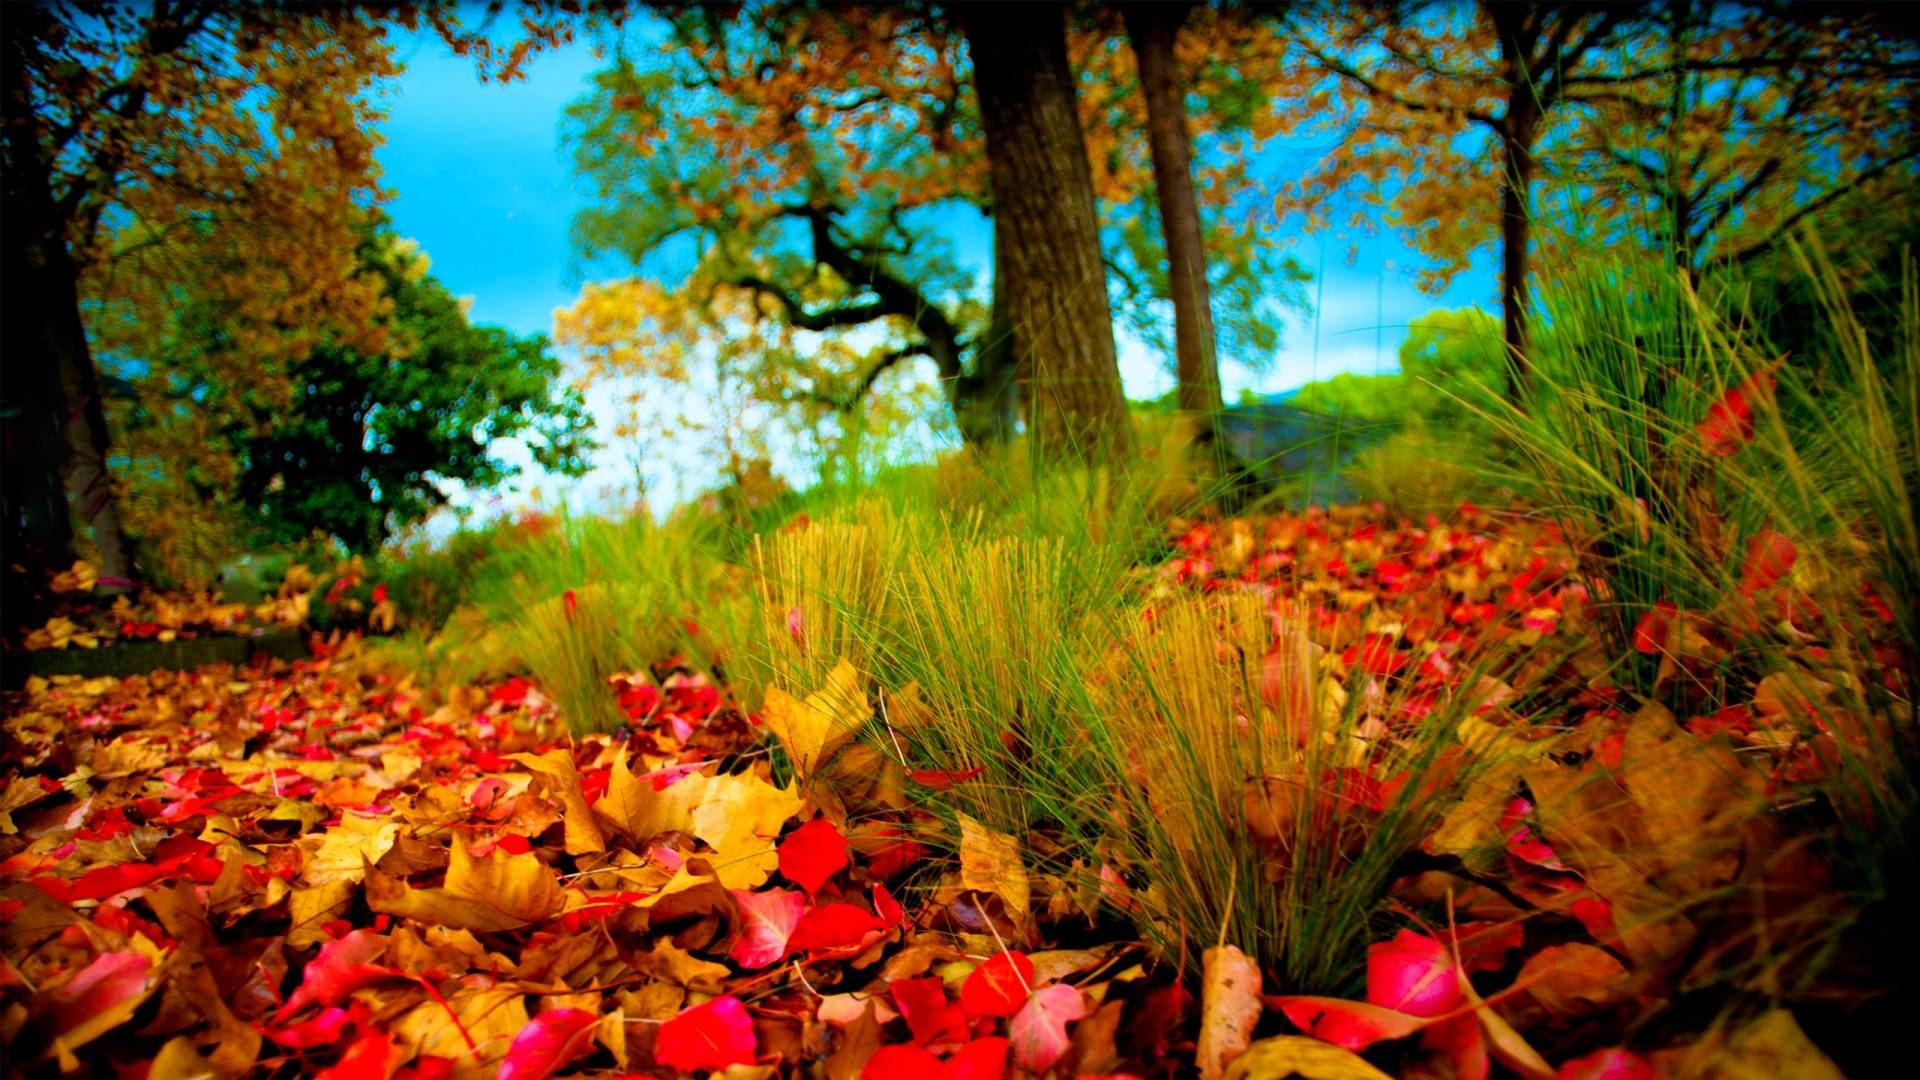 HD 3D Nature Wallpapers 1080p Widescreen